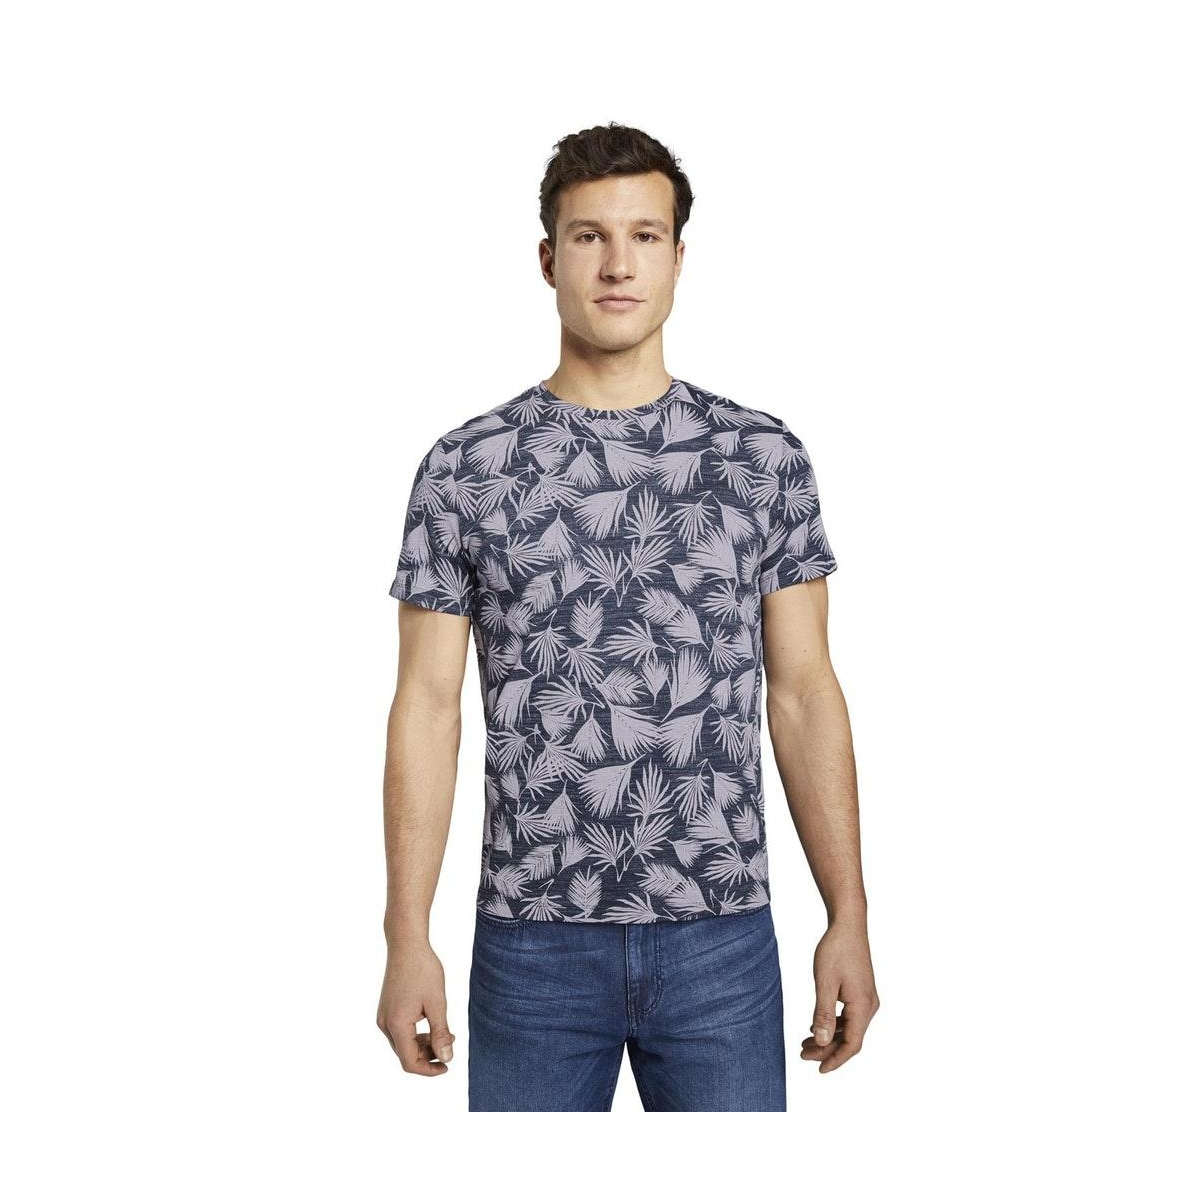 t shirt met all over print 1016148xx10 tom tailor t-shirt 22830